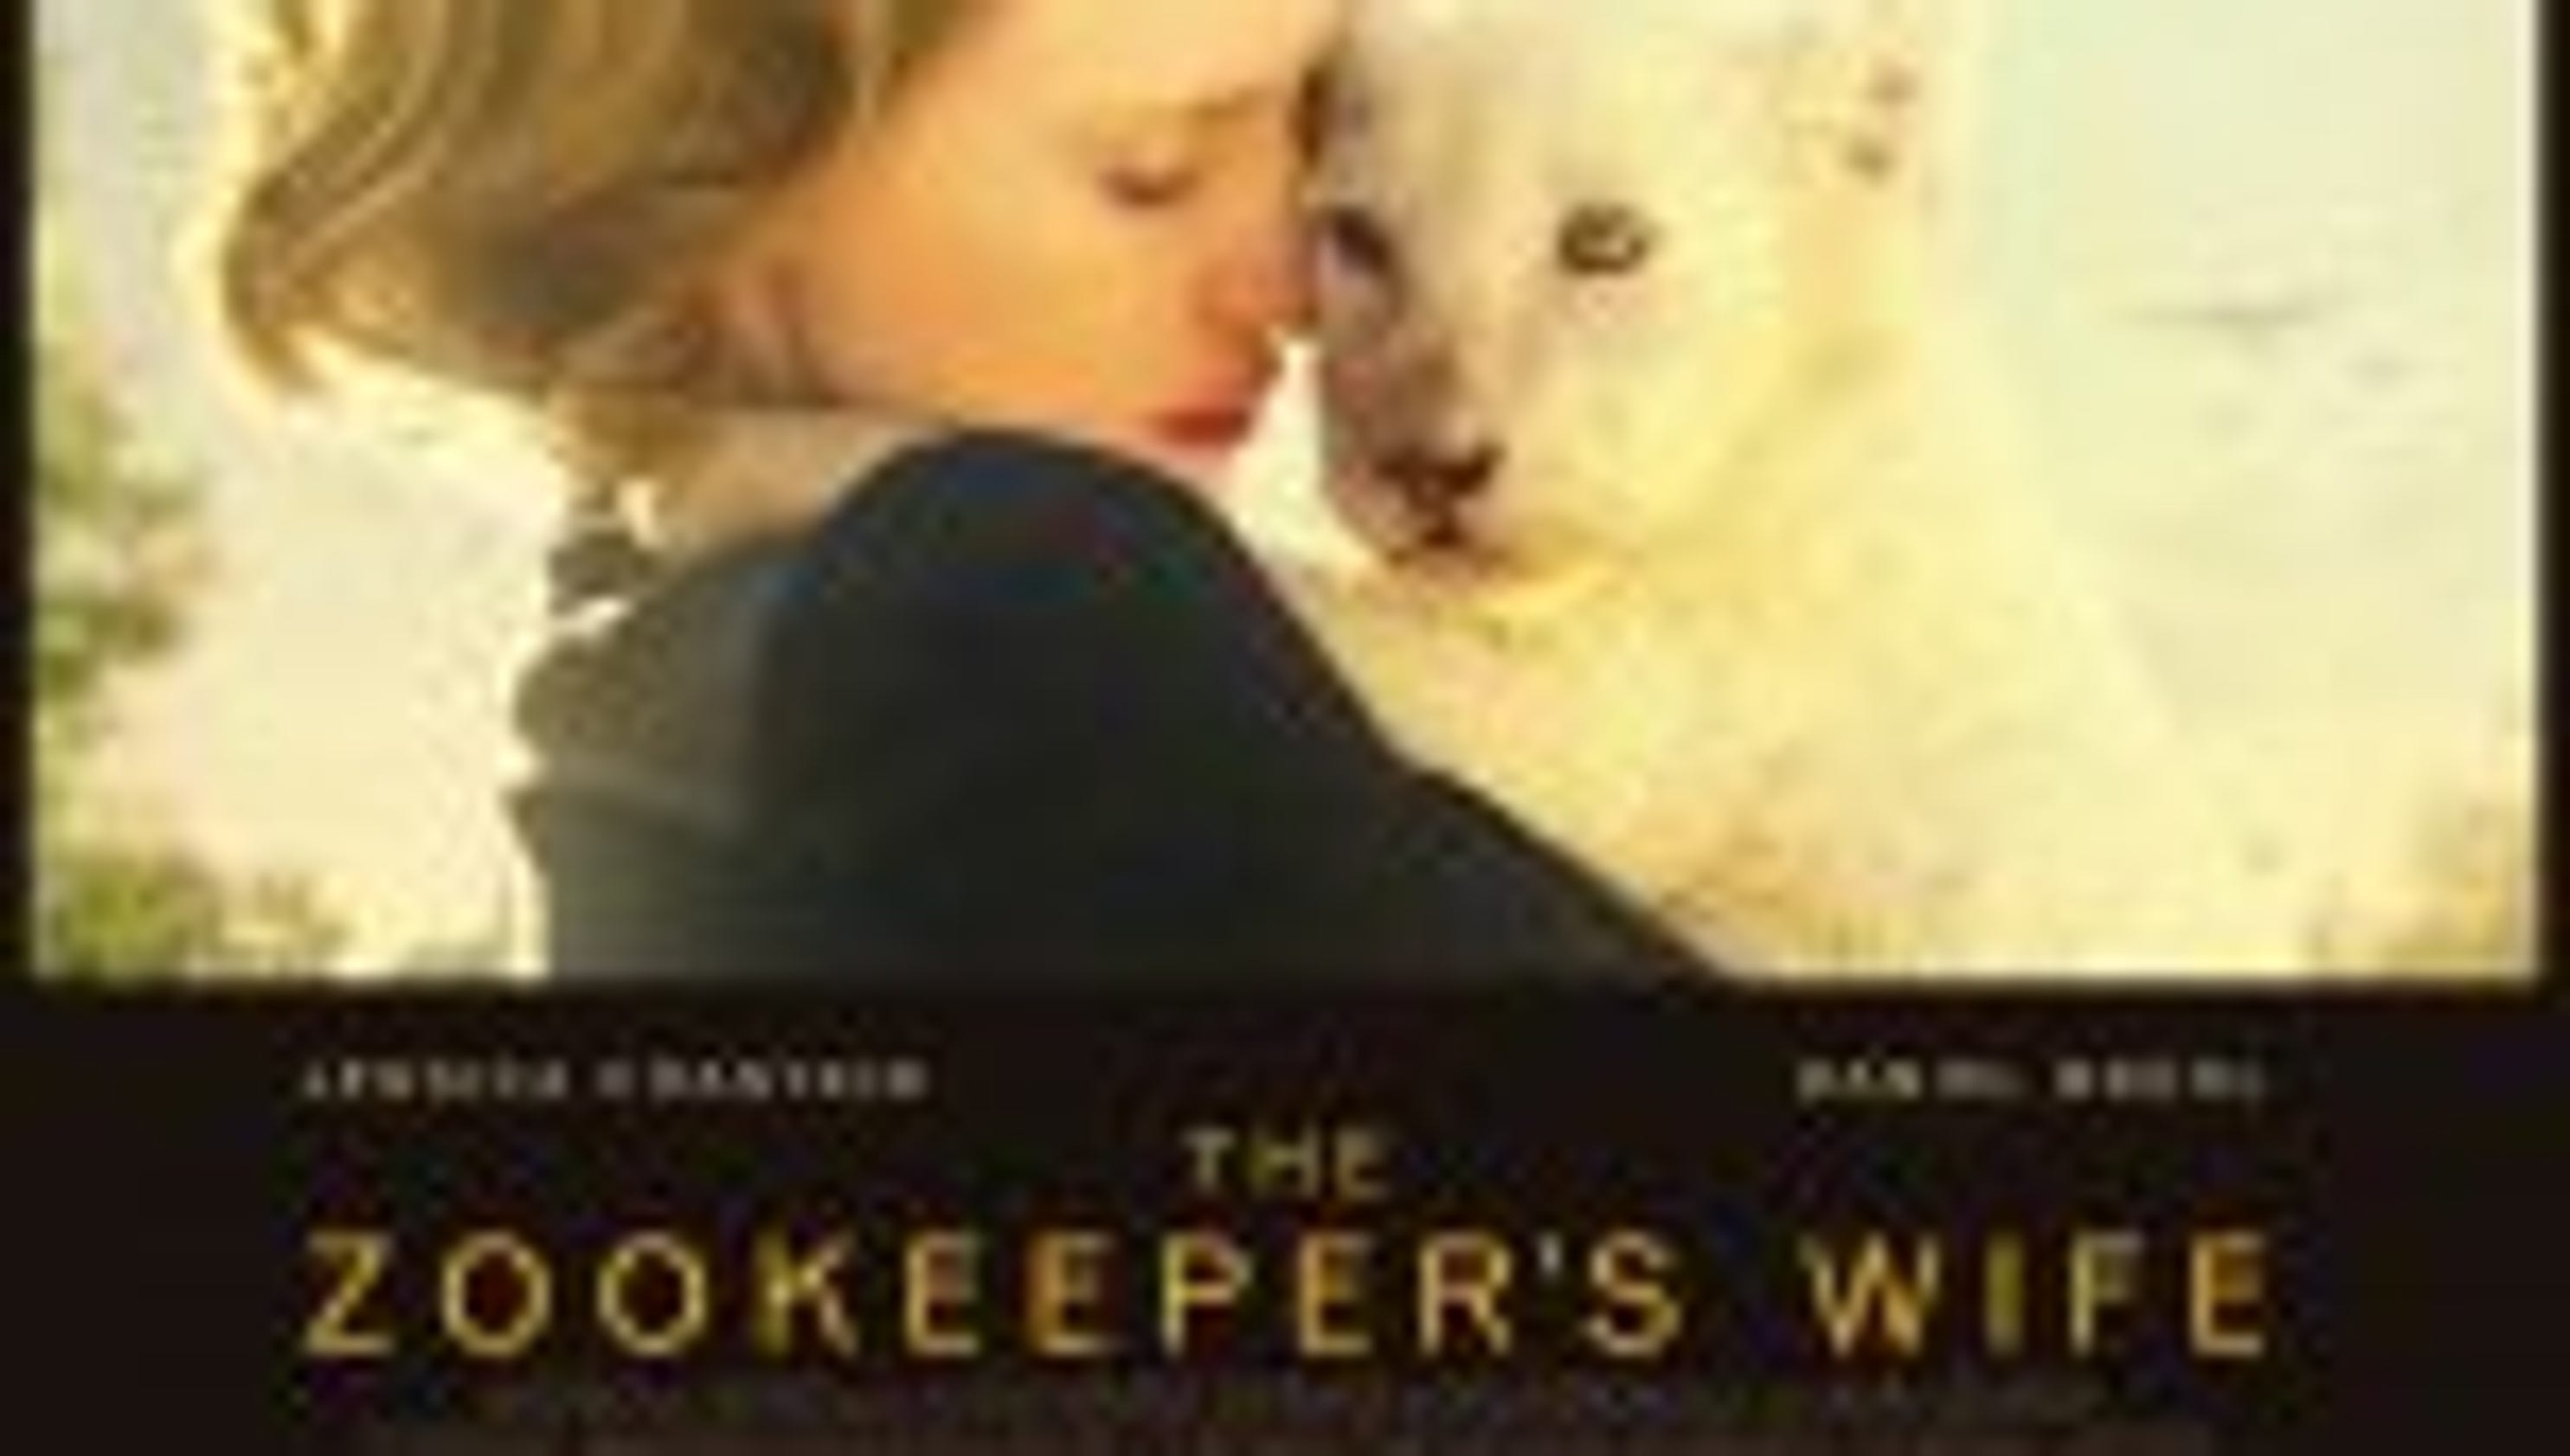 The Zookeeper S Wife Image Mag